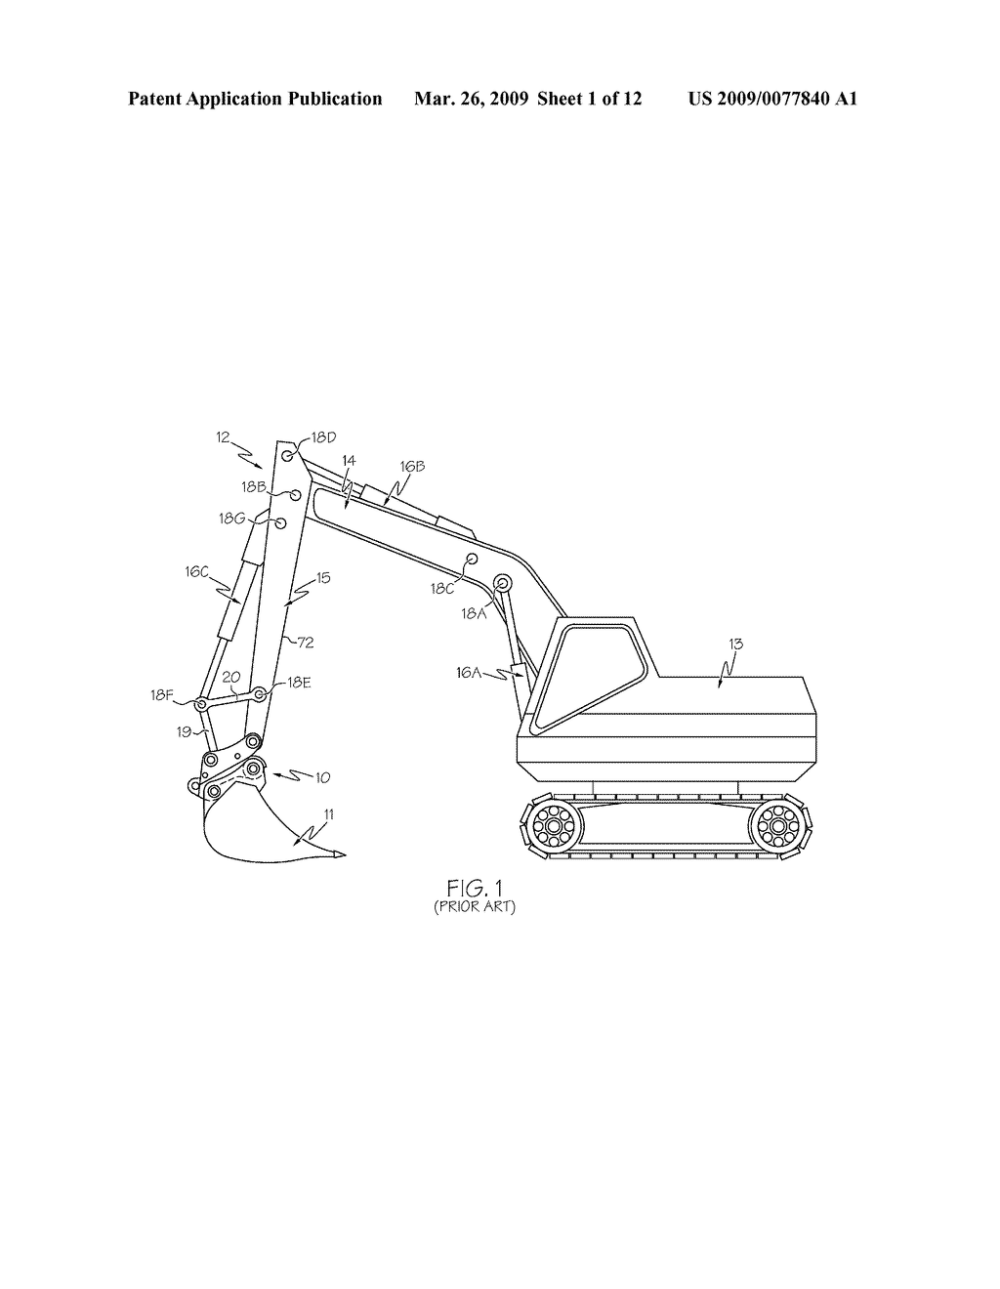 medium resolution of progressive linkage for excavator thumb diagram schematic and image 02